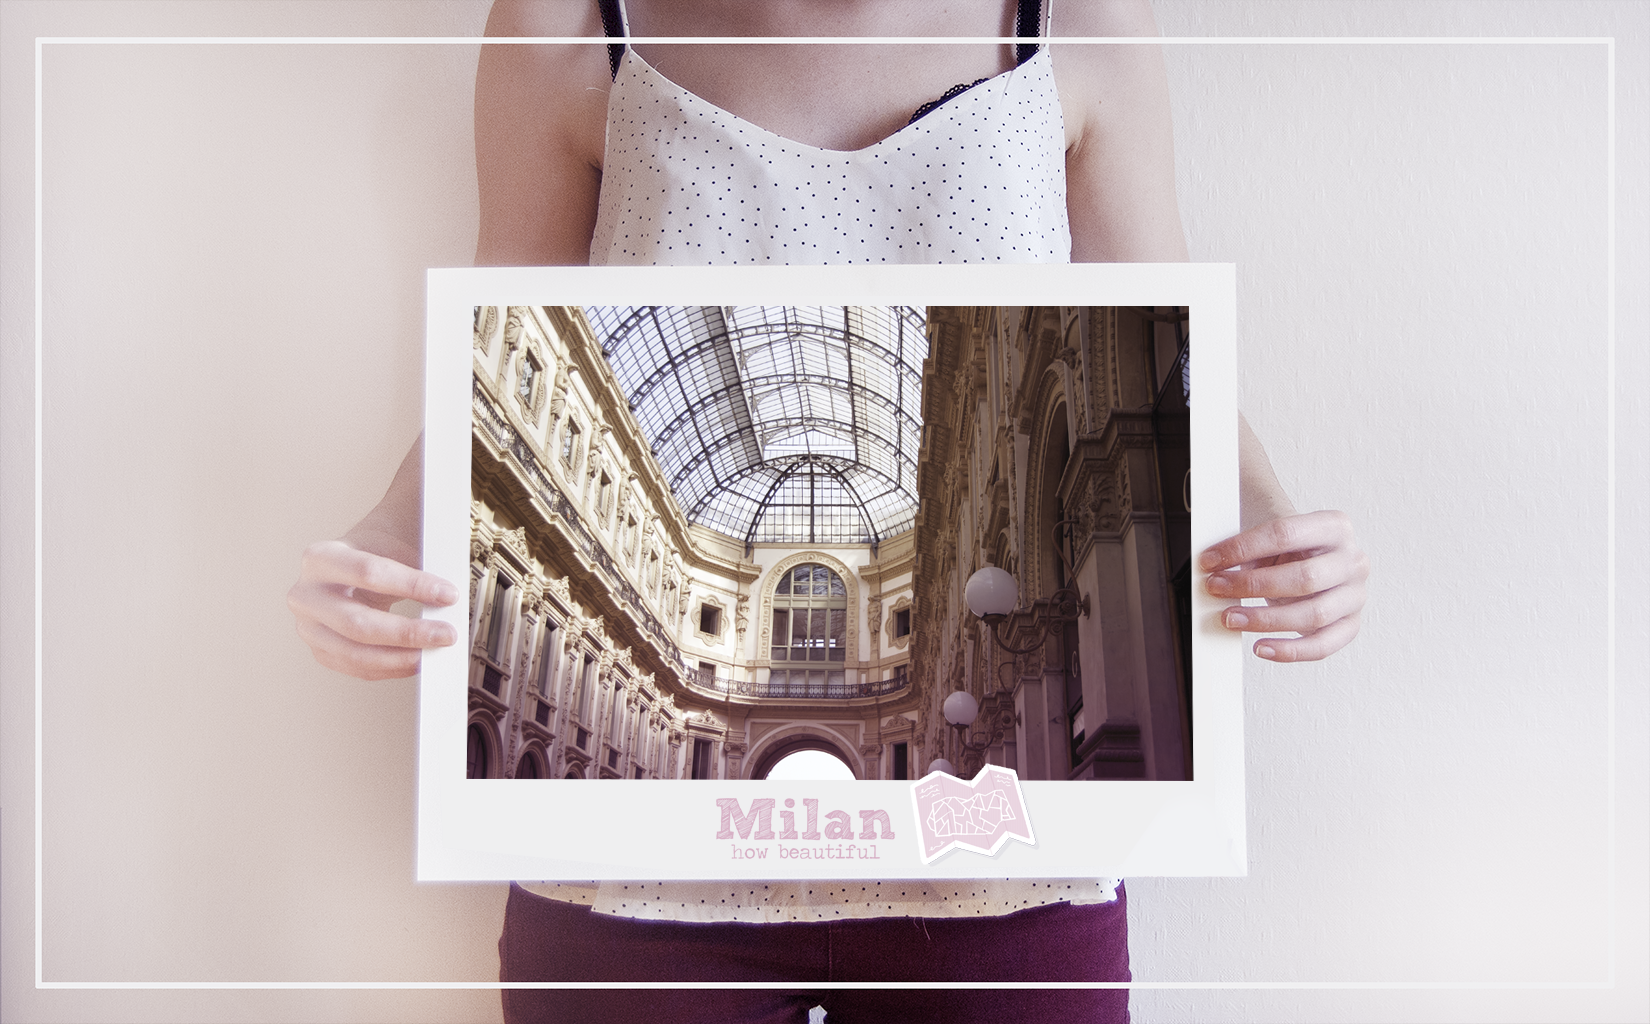 milan digital pink gift italy travel cityscape photography city print art